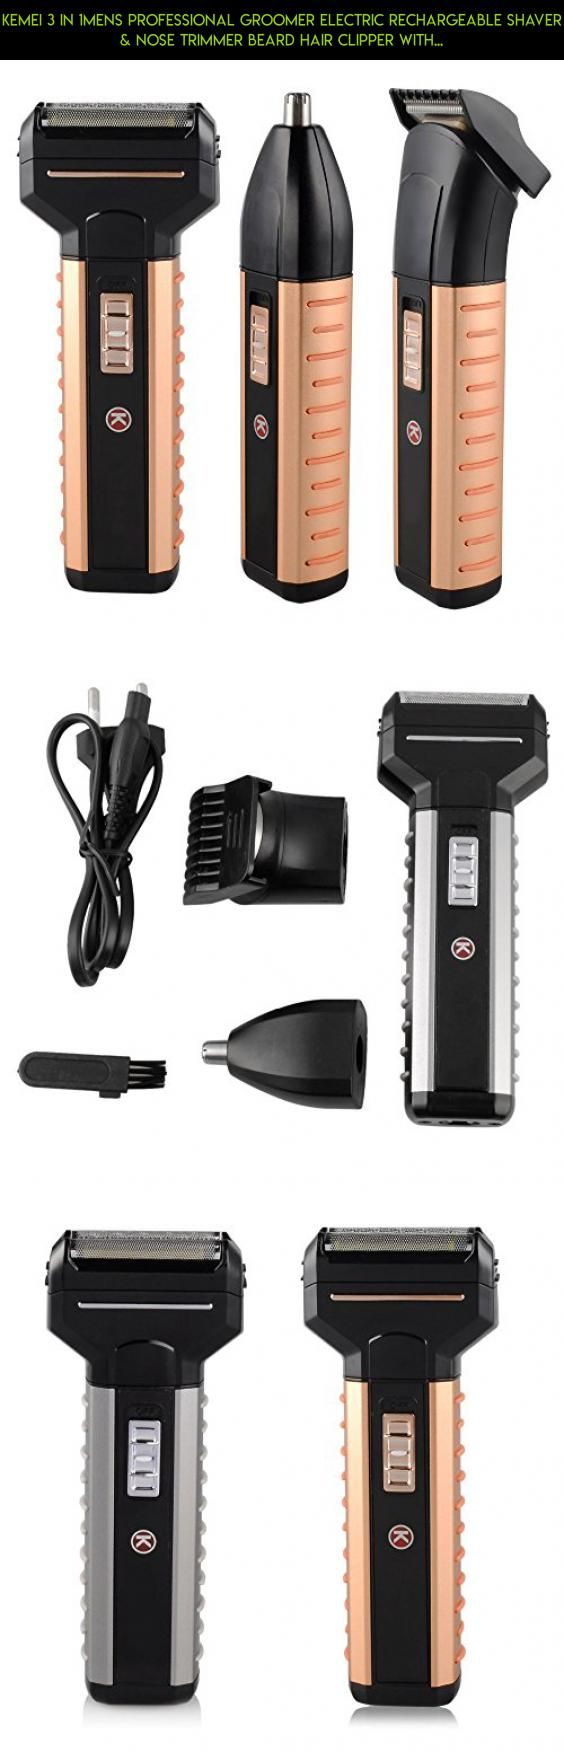 Kemei 3 in 1mens Professional Groomer Electric Rechargeable Shaver & Nose Trimmer Beard Hair Clipper with Precision Blades #camera #tech #shopping #racing #men #trimmers #for #drone #plans #fpv #gadgets #technology #products #parts #beard #kit